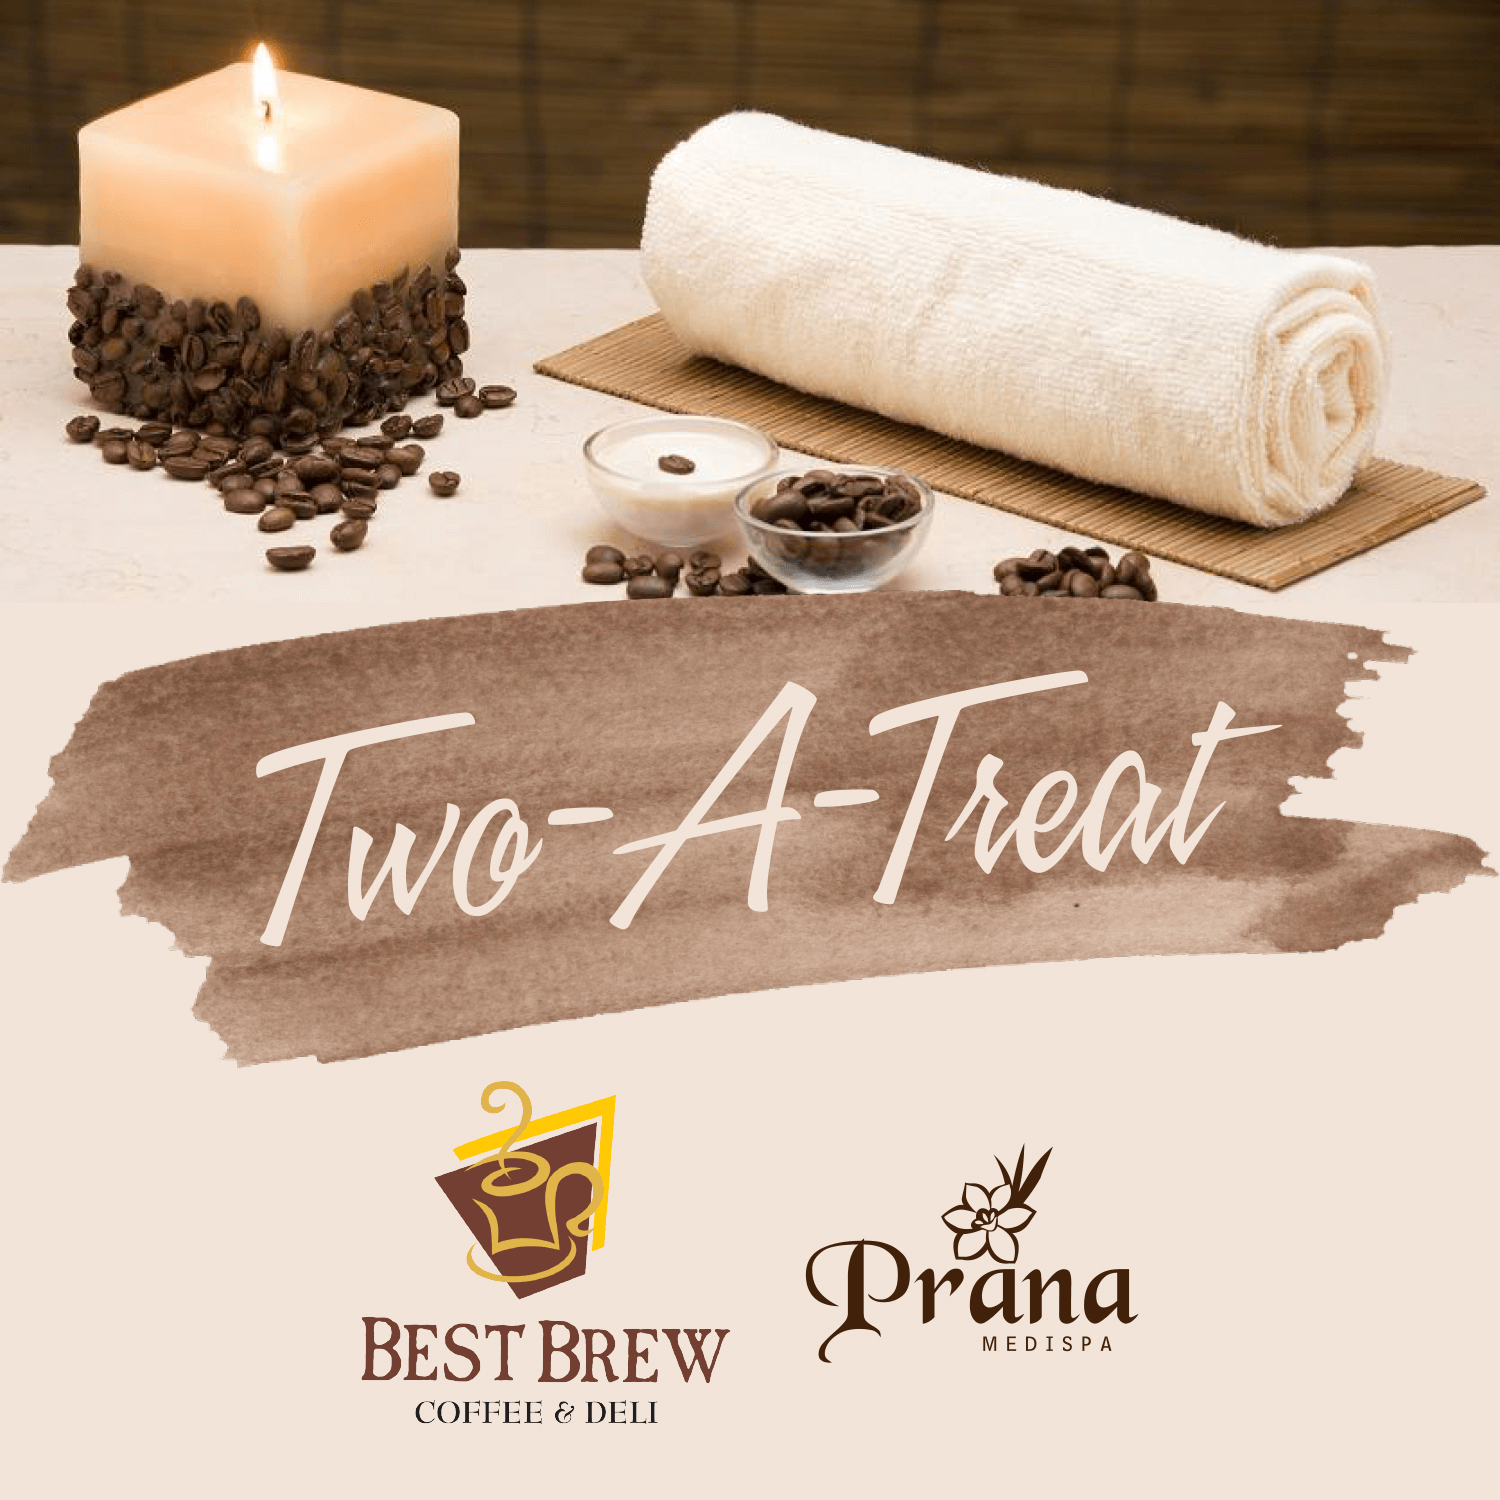 Prana Medispa x Best Brew Cafe October Promo: Two-a-Treat